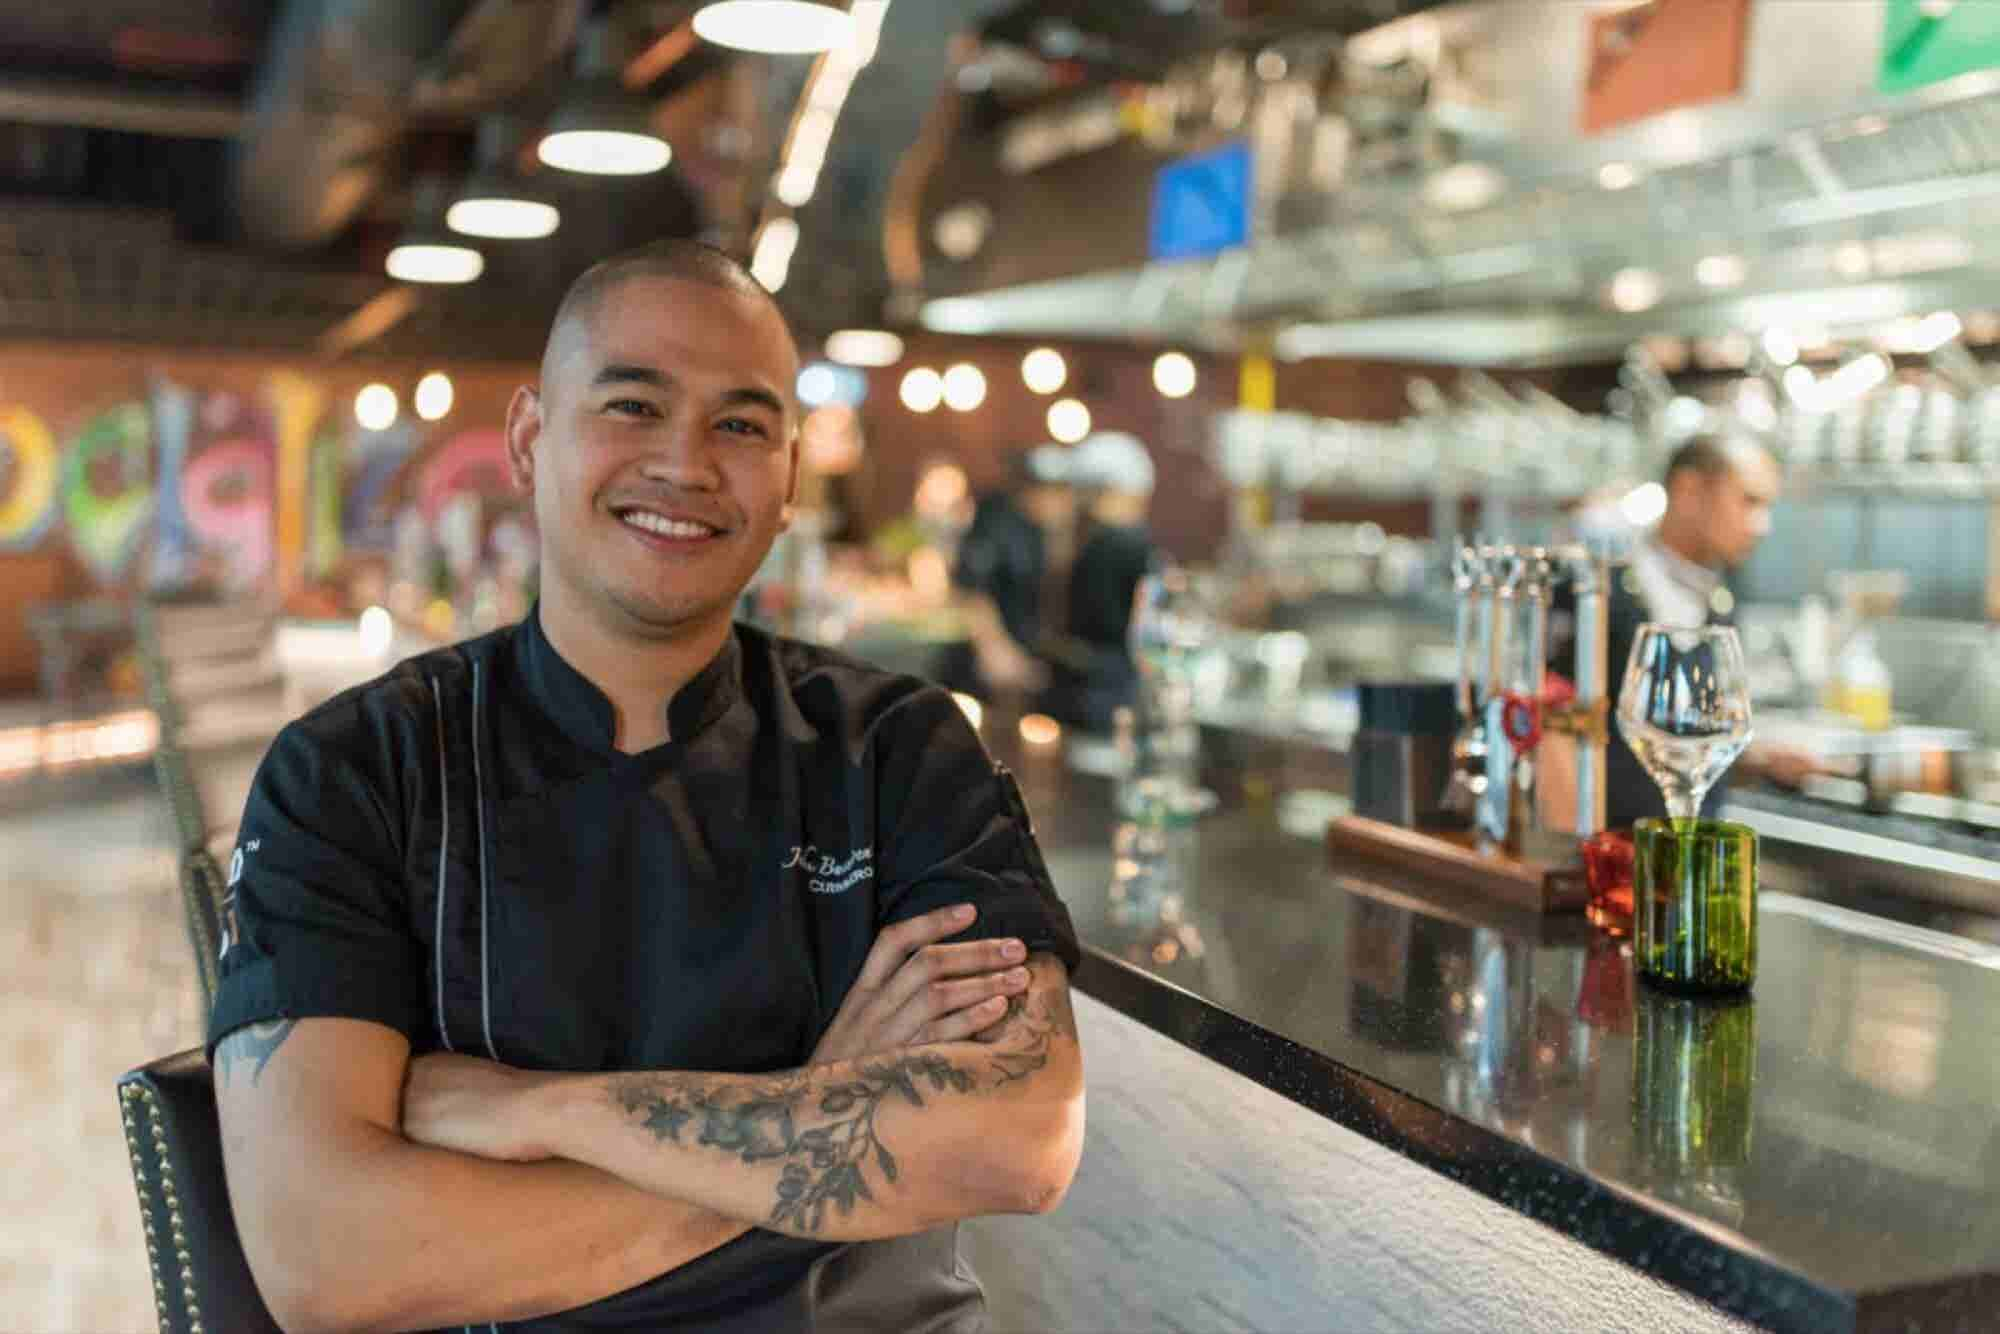 Chef John Buenaventura's Cuisinero Uno Is Making A Mark On Dubai's Culinary Scene